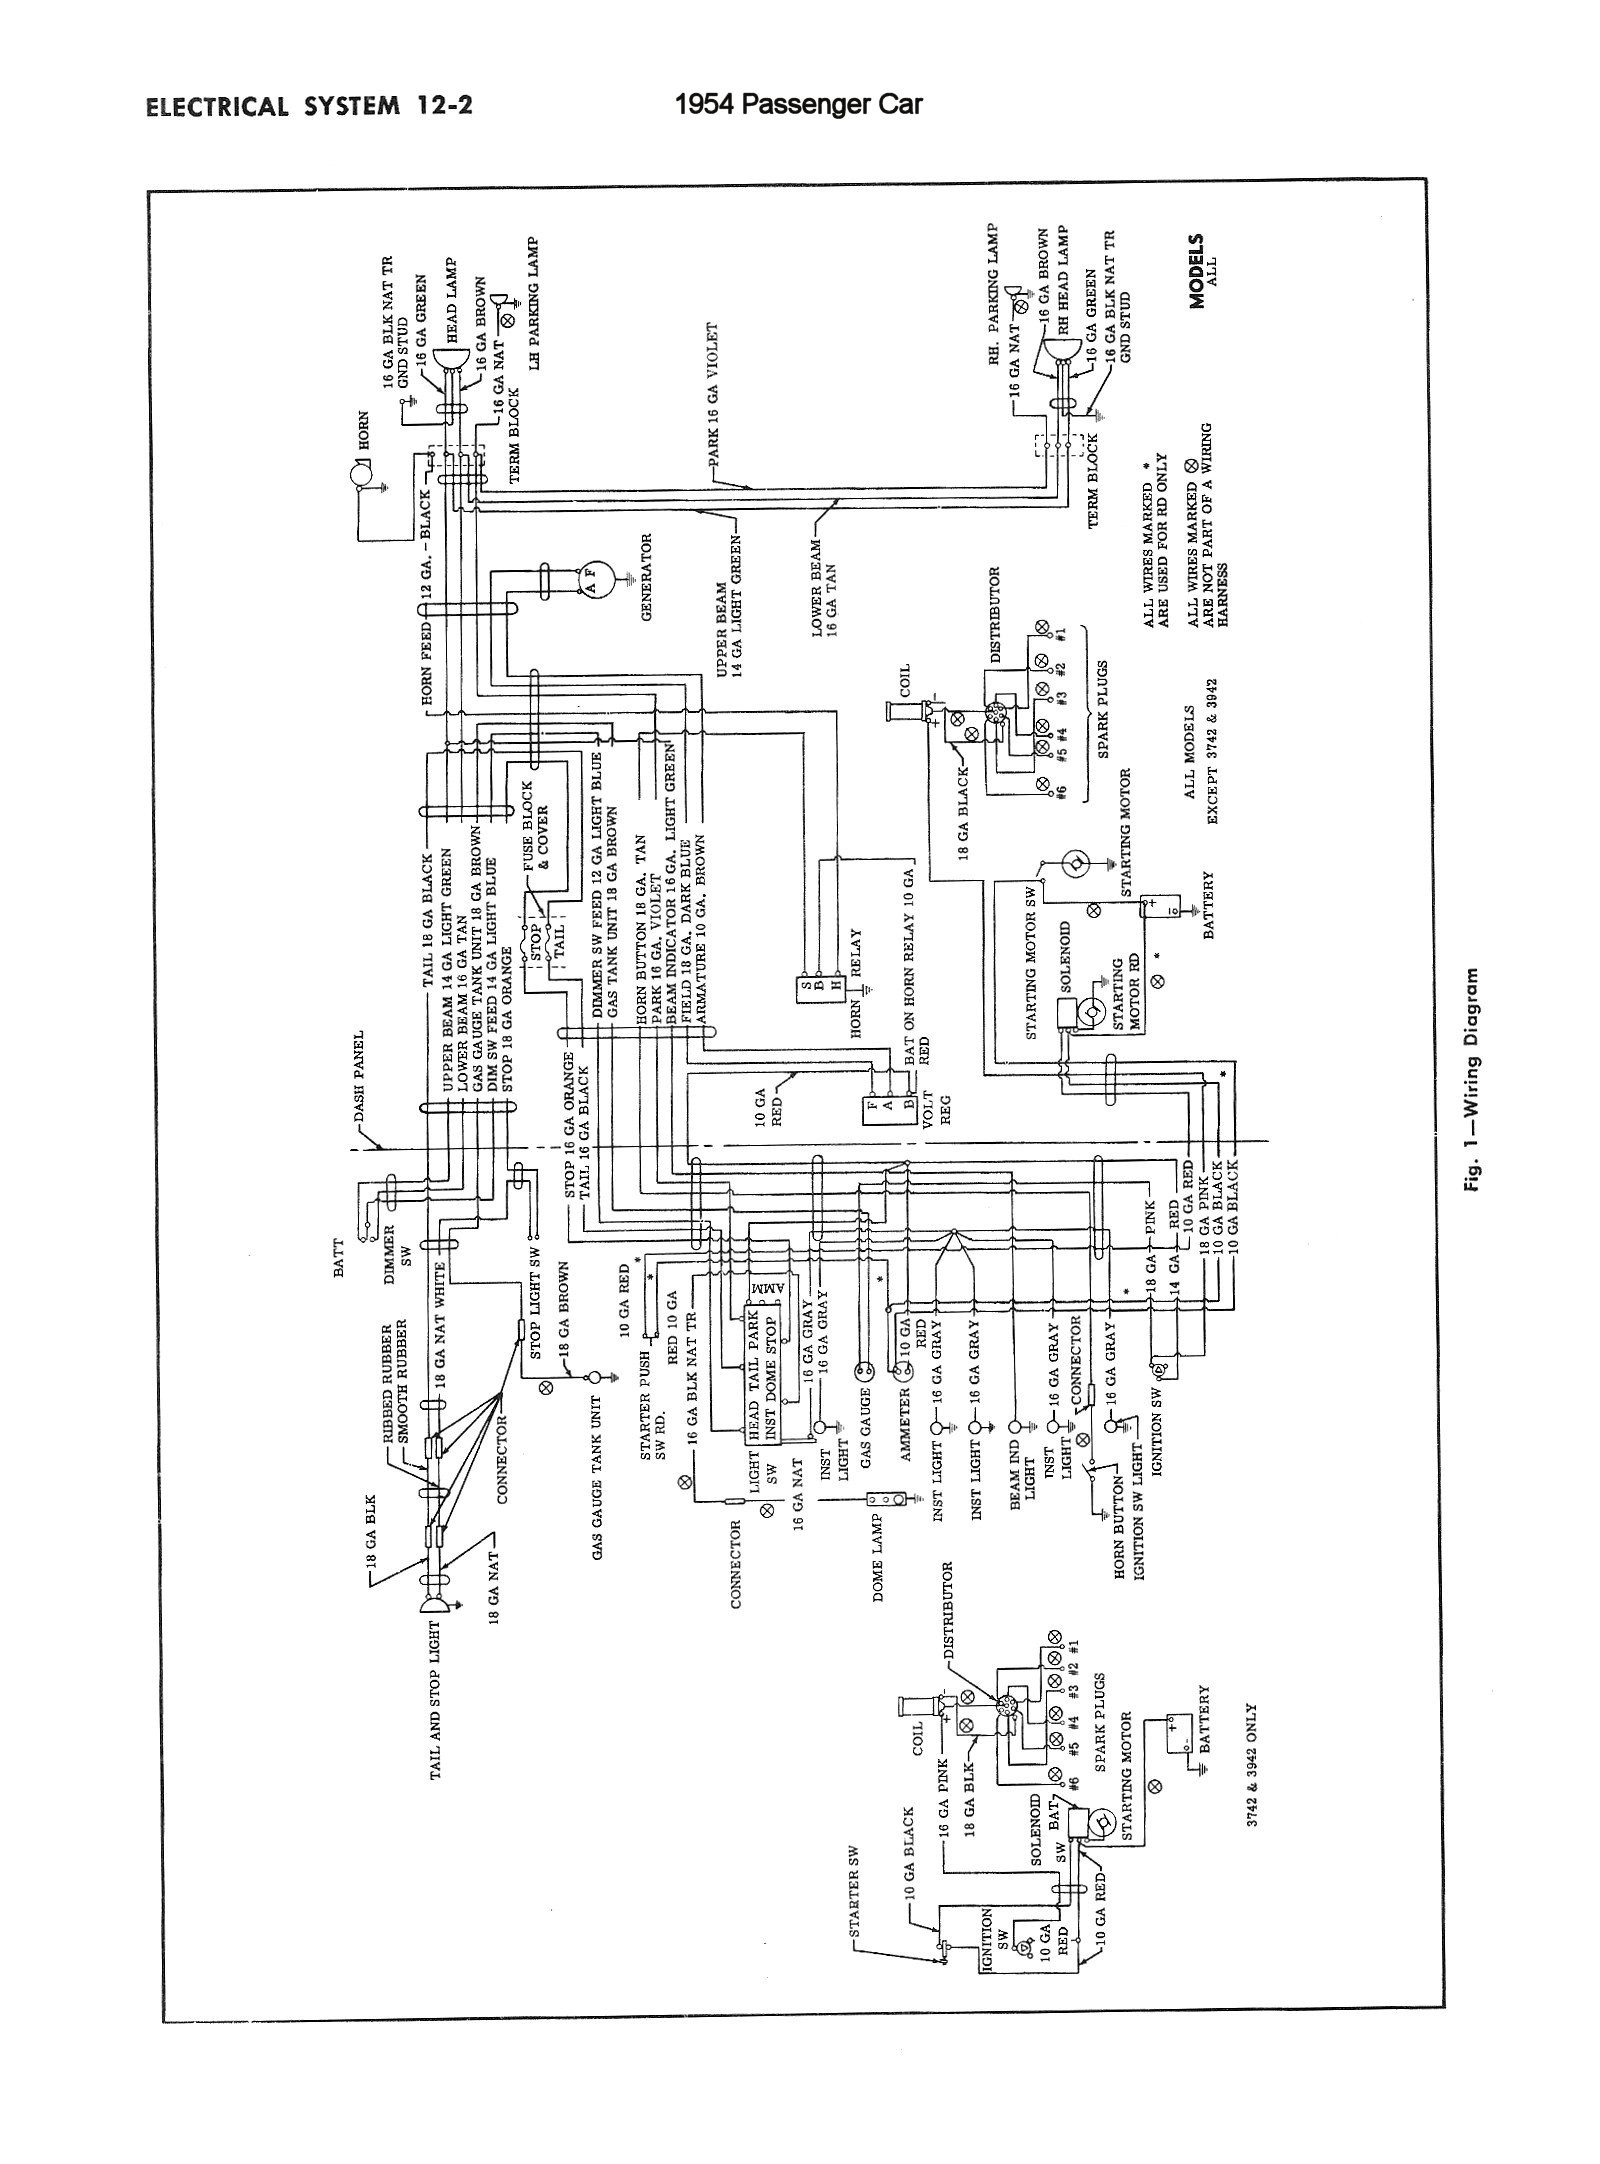 home wiring in 1954 example electrical wiring diagram u2022 rh huntervalleyhotels co Basic Electrical Wiring Diagrams Home Outlet Wiring